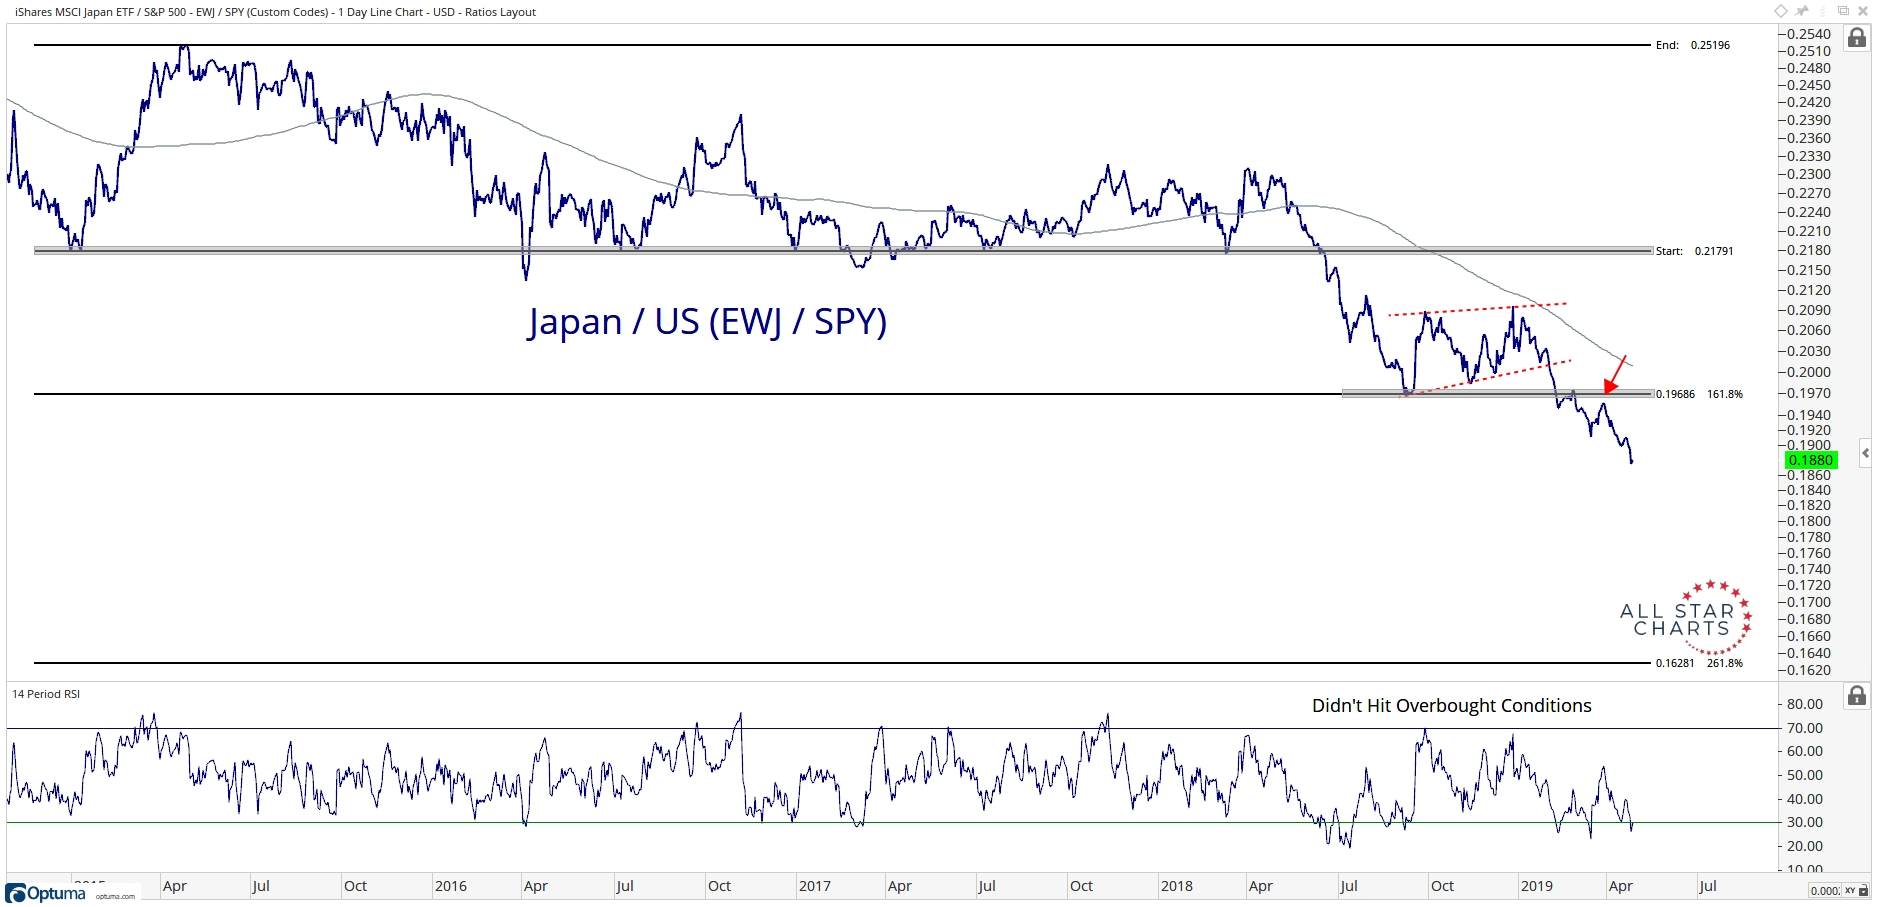 Chart of The Week] US Stocks Are Breaking Out - All Star